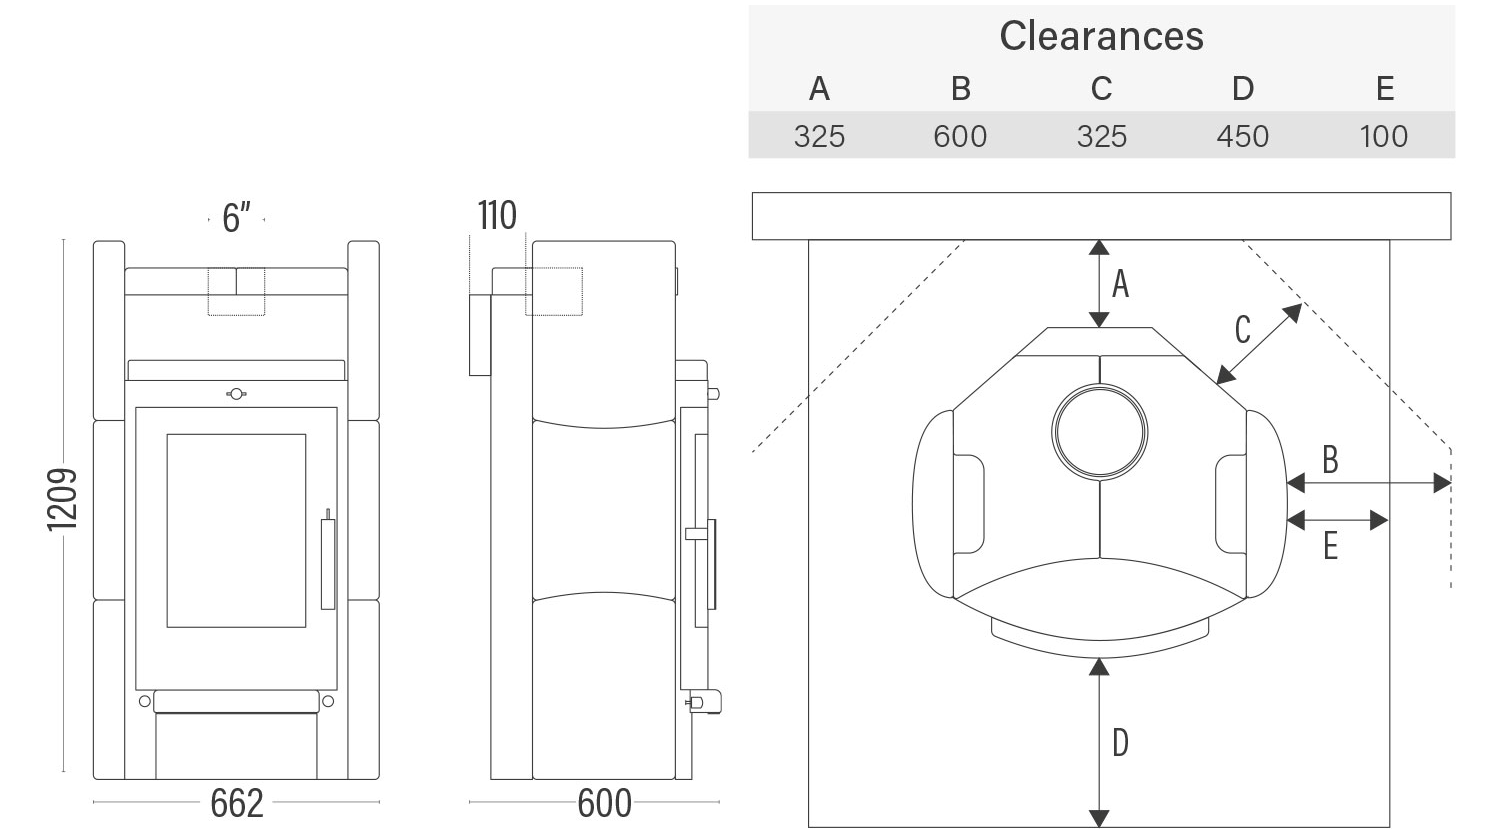 Euro Uppsala dimensions and clearances